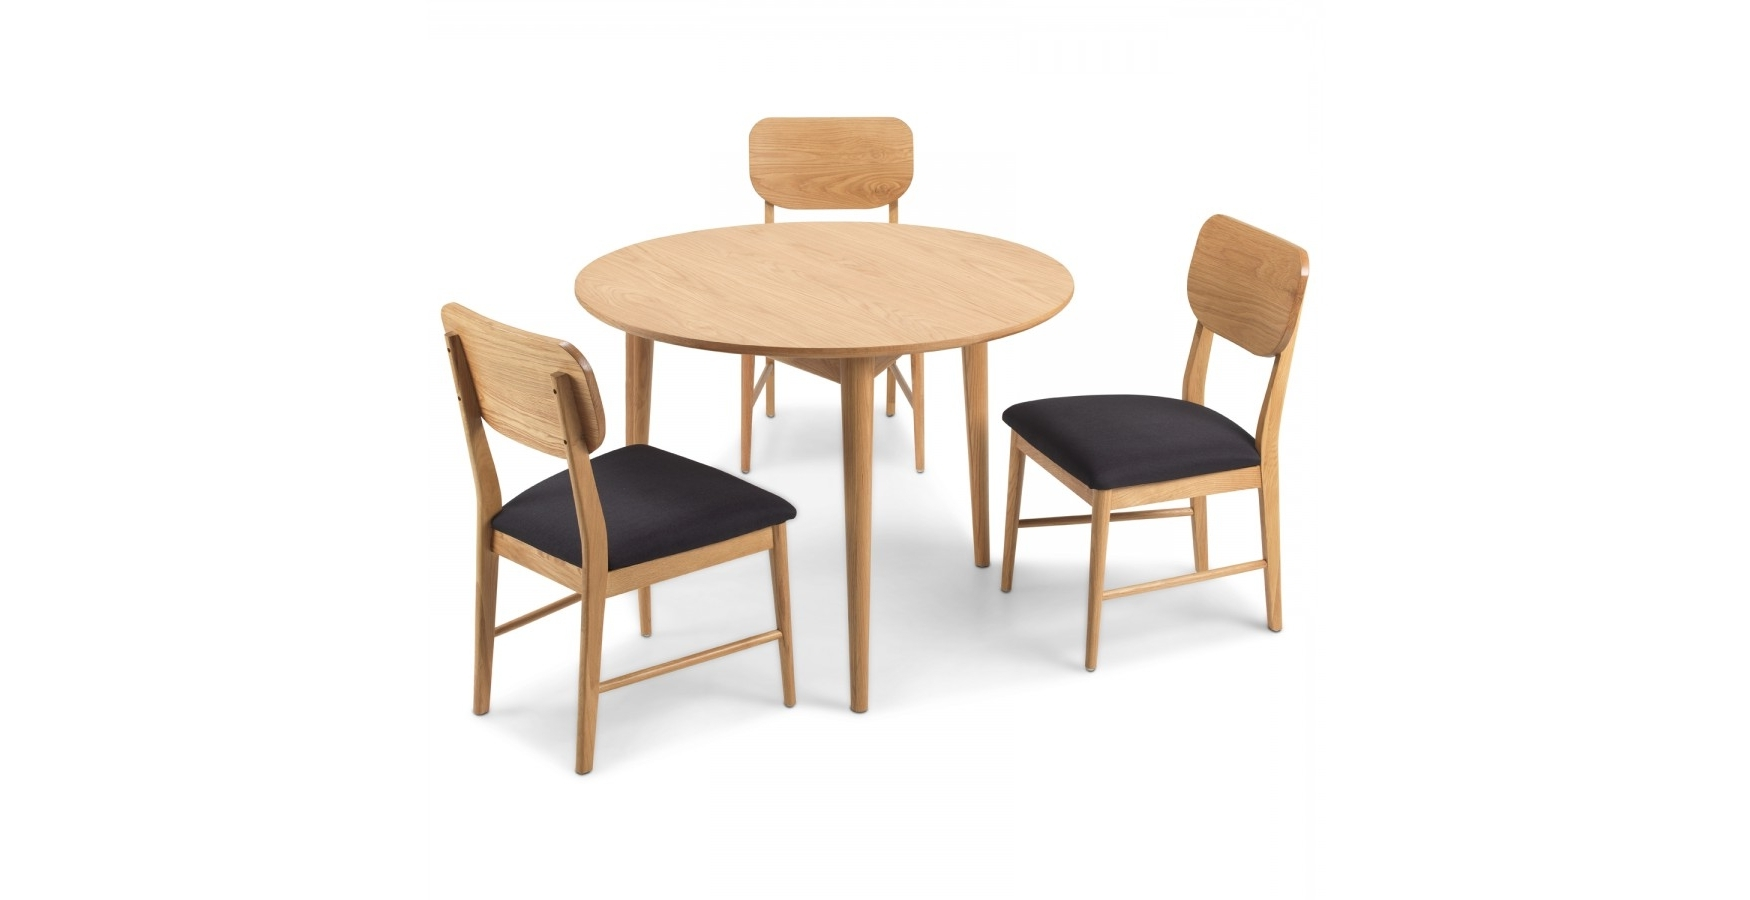 Skioa Circular Dining Table With 2 Chairs – Lifestyle Furniture Uk With 2017 Circular Oak Dining Tables (View 21 of 25)